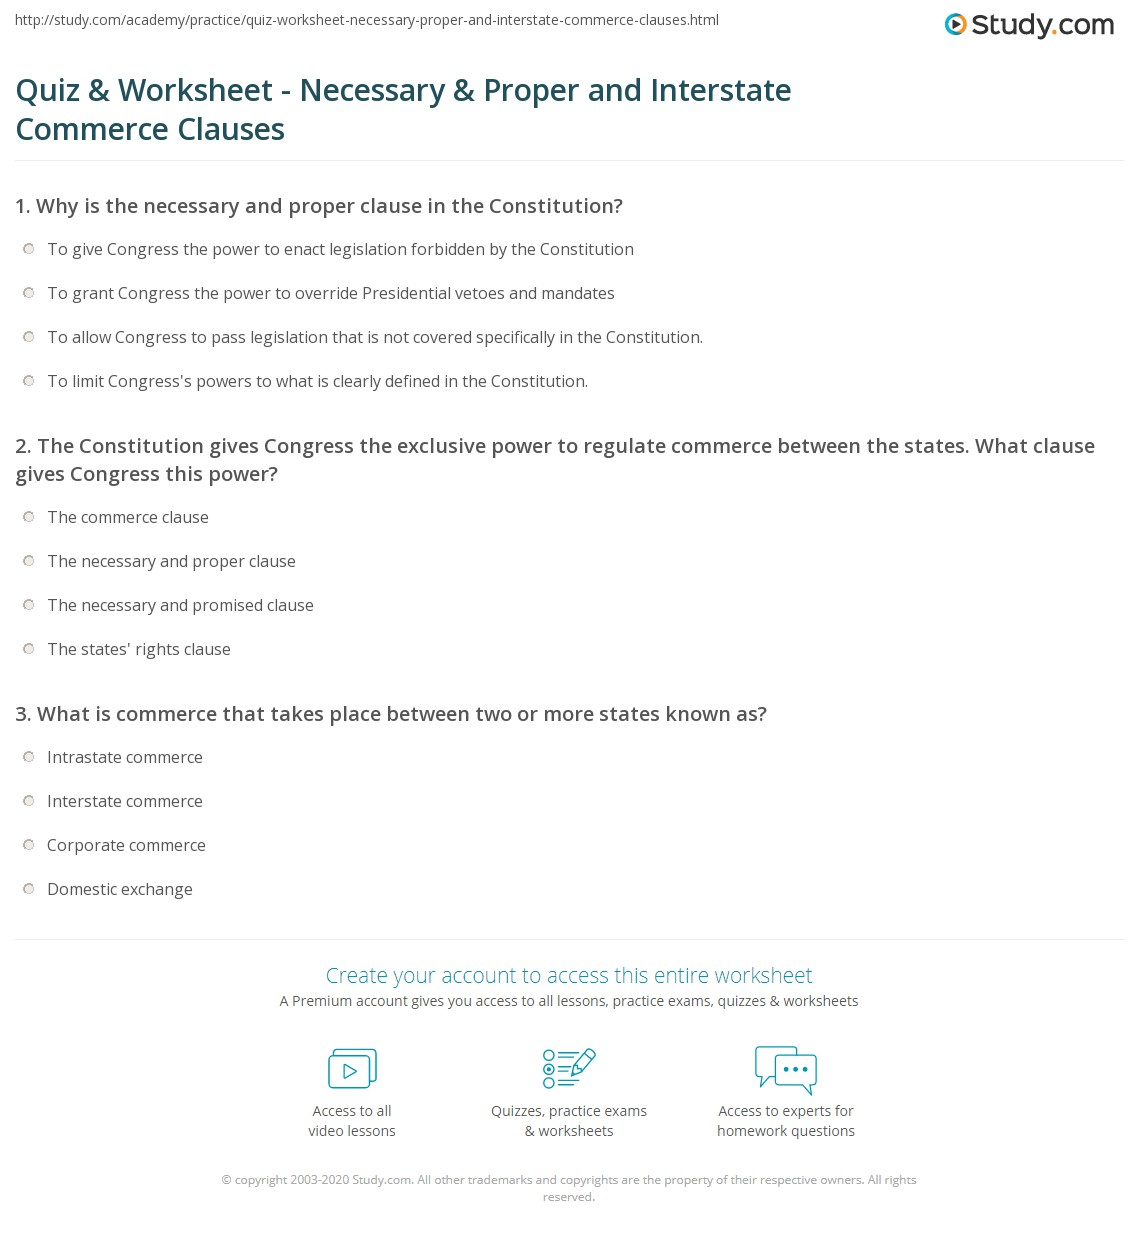 quiz & worksheet - necessary & proper and interstate commerce